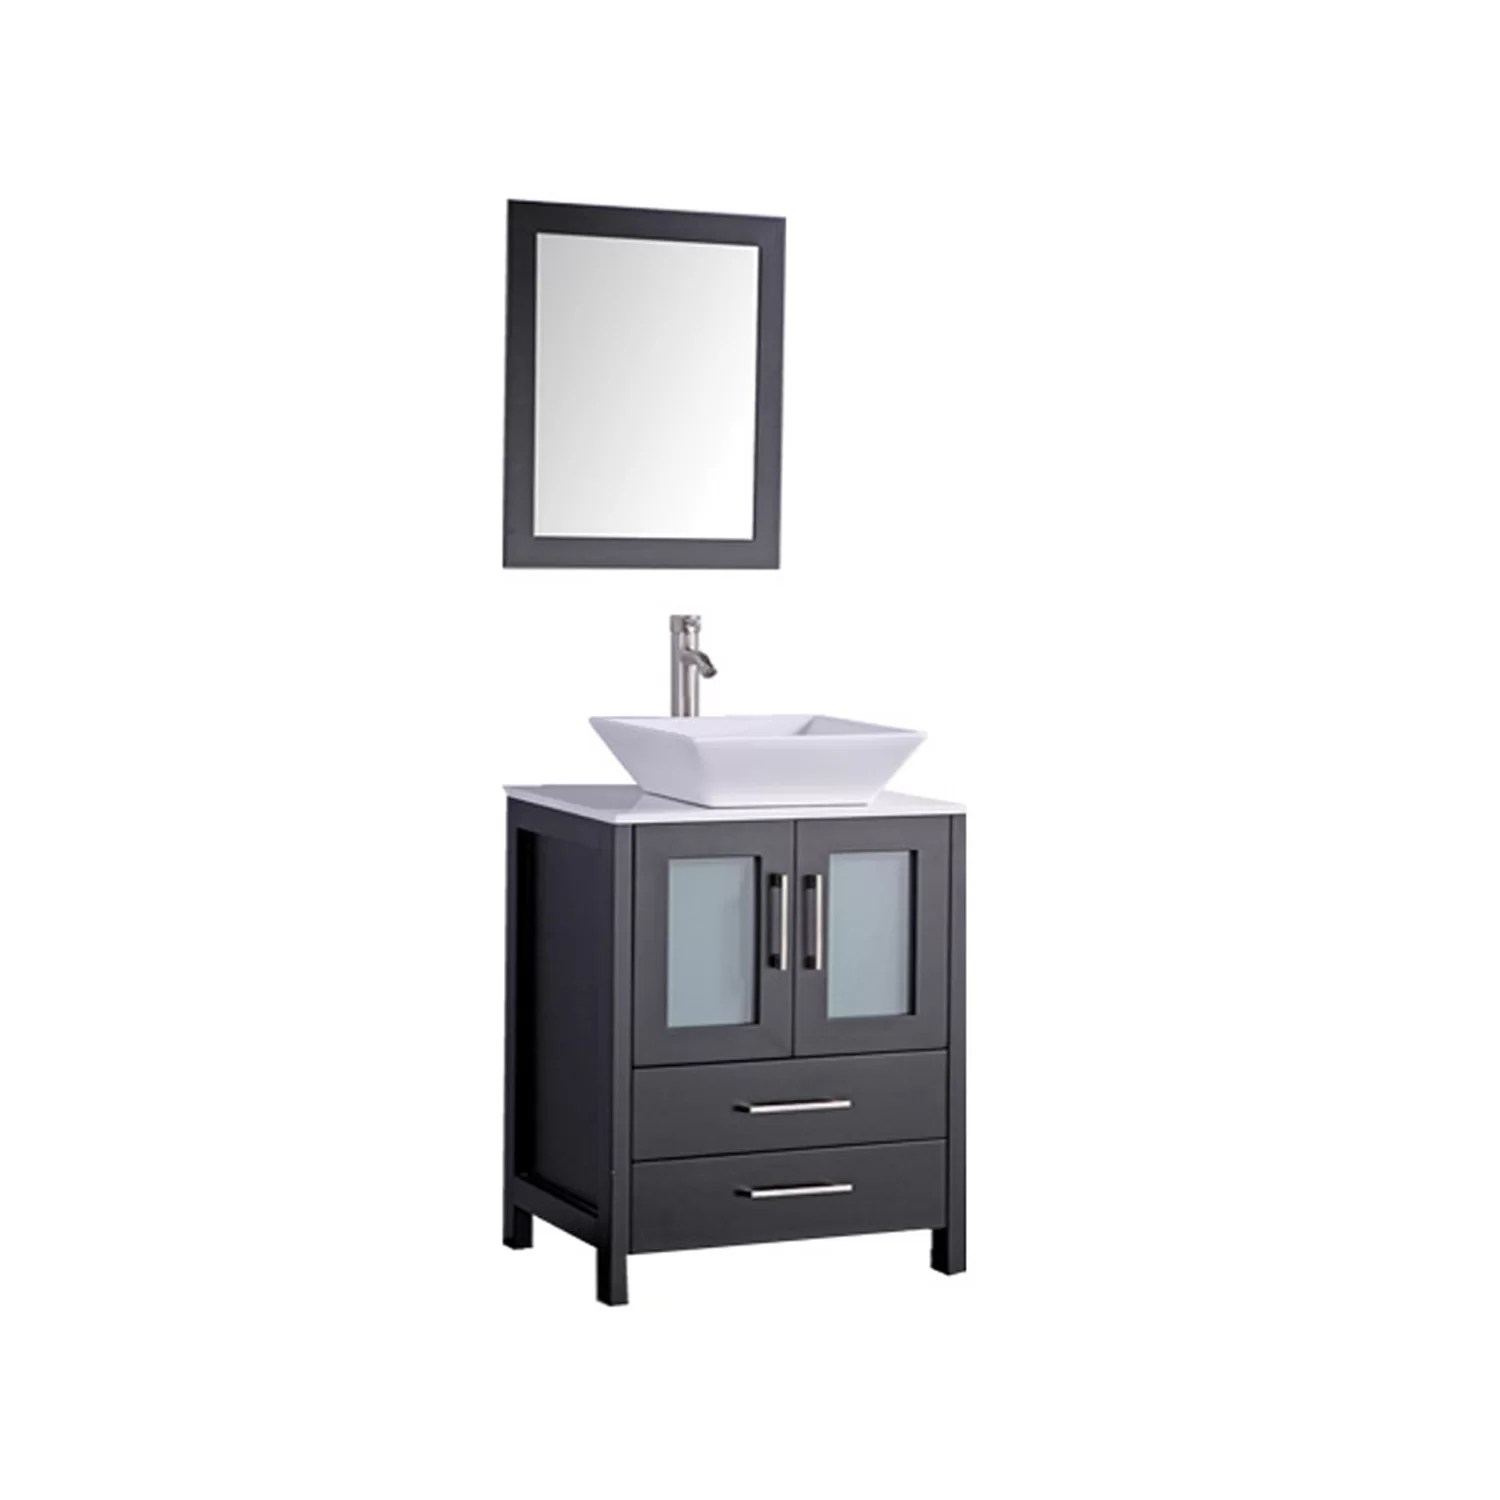 MTDVanities Jordan 30 Single Sink Bathroom Vanity Set